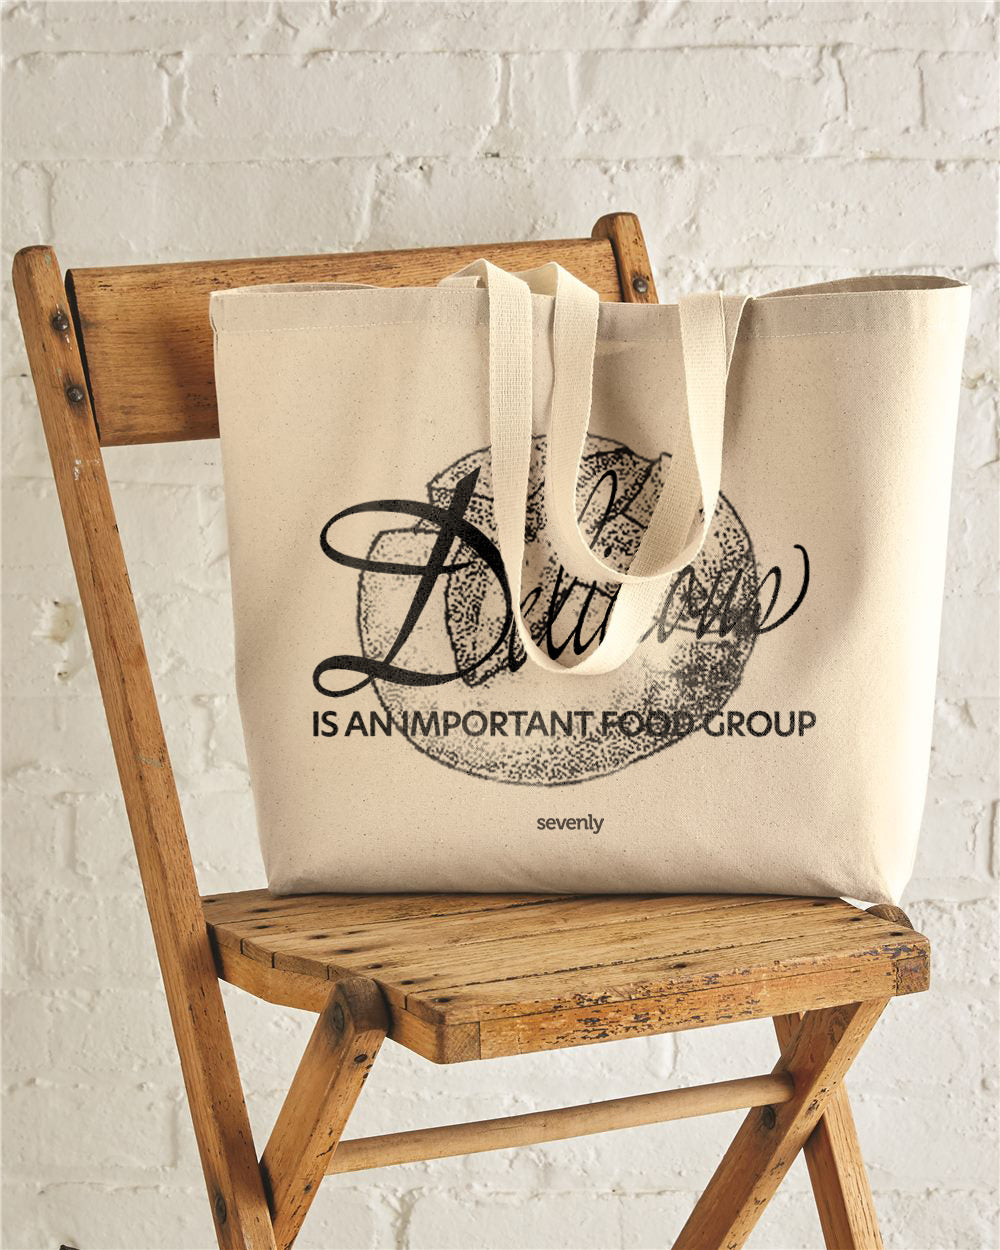 Delicious Is An Important Food Group Sourdough Jumbo Cotton Canvas Jumbo Tote